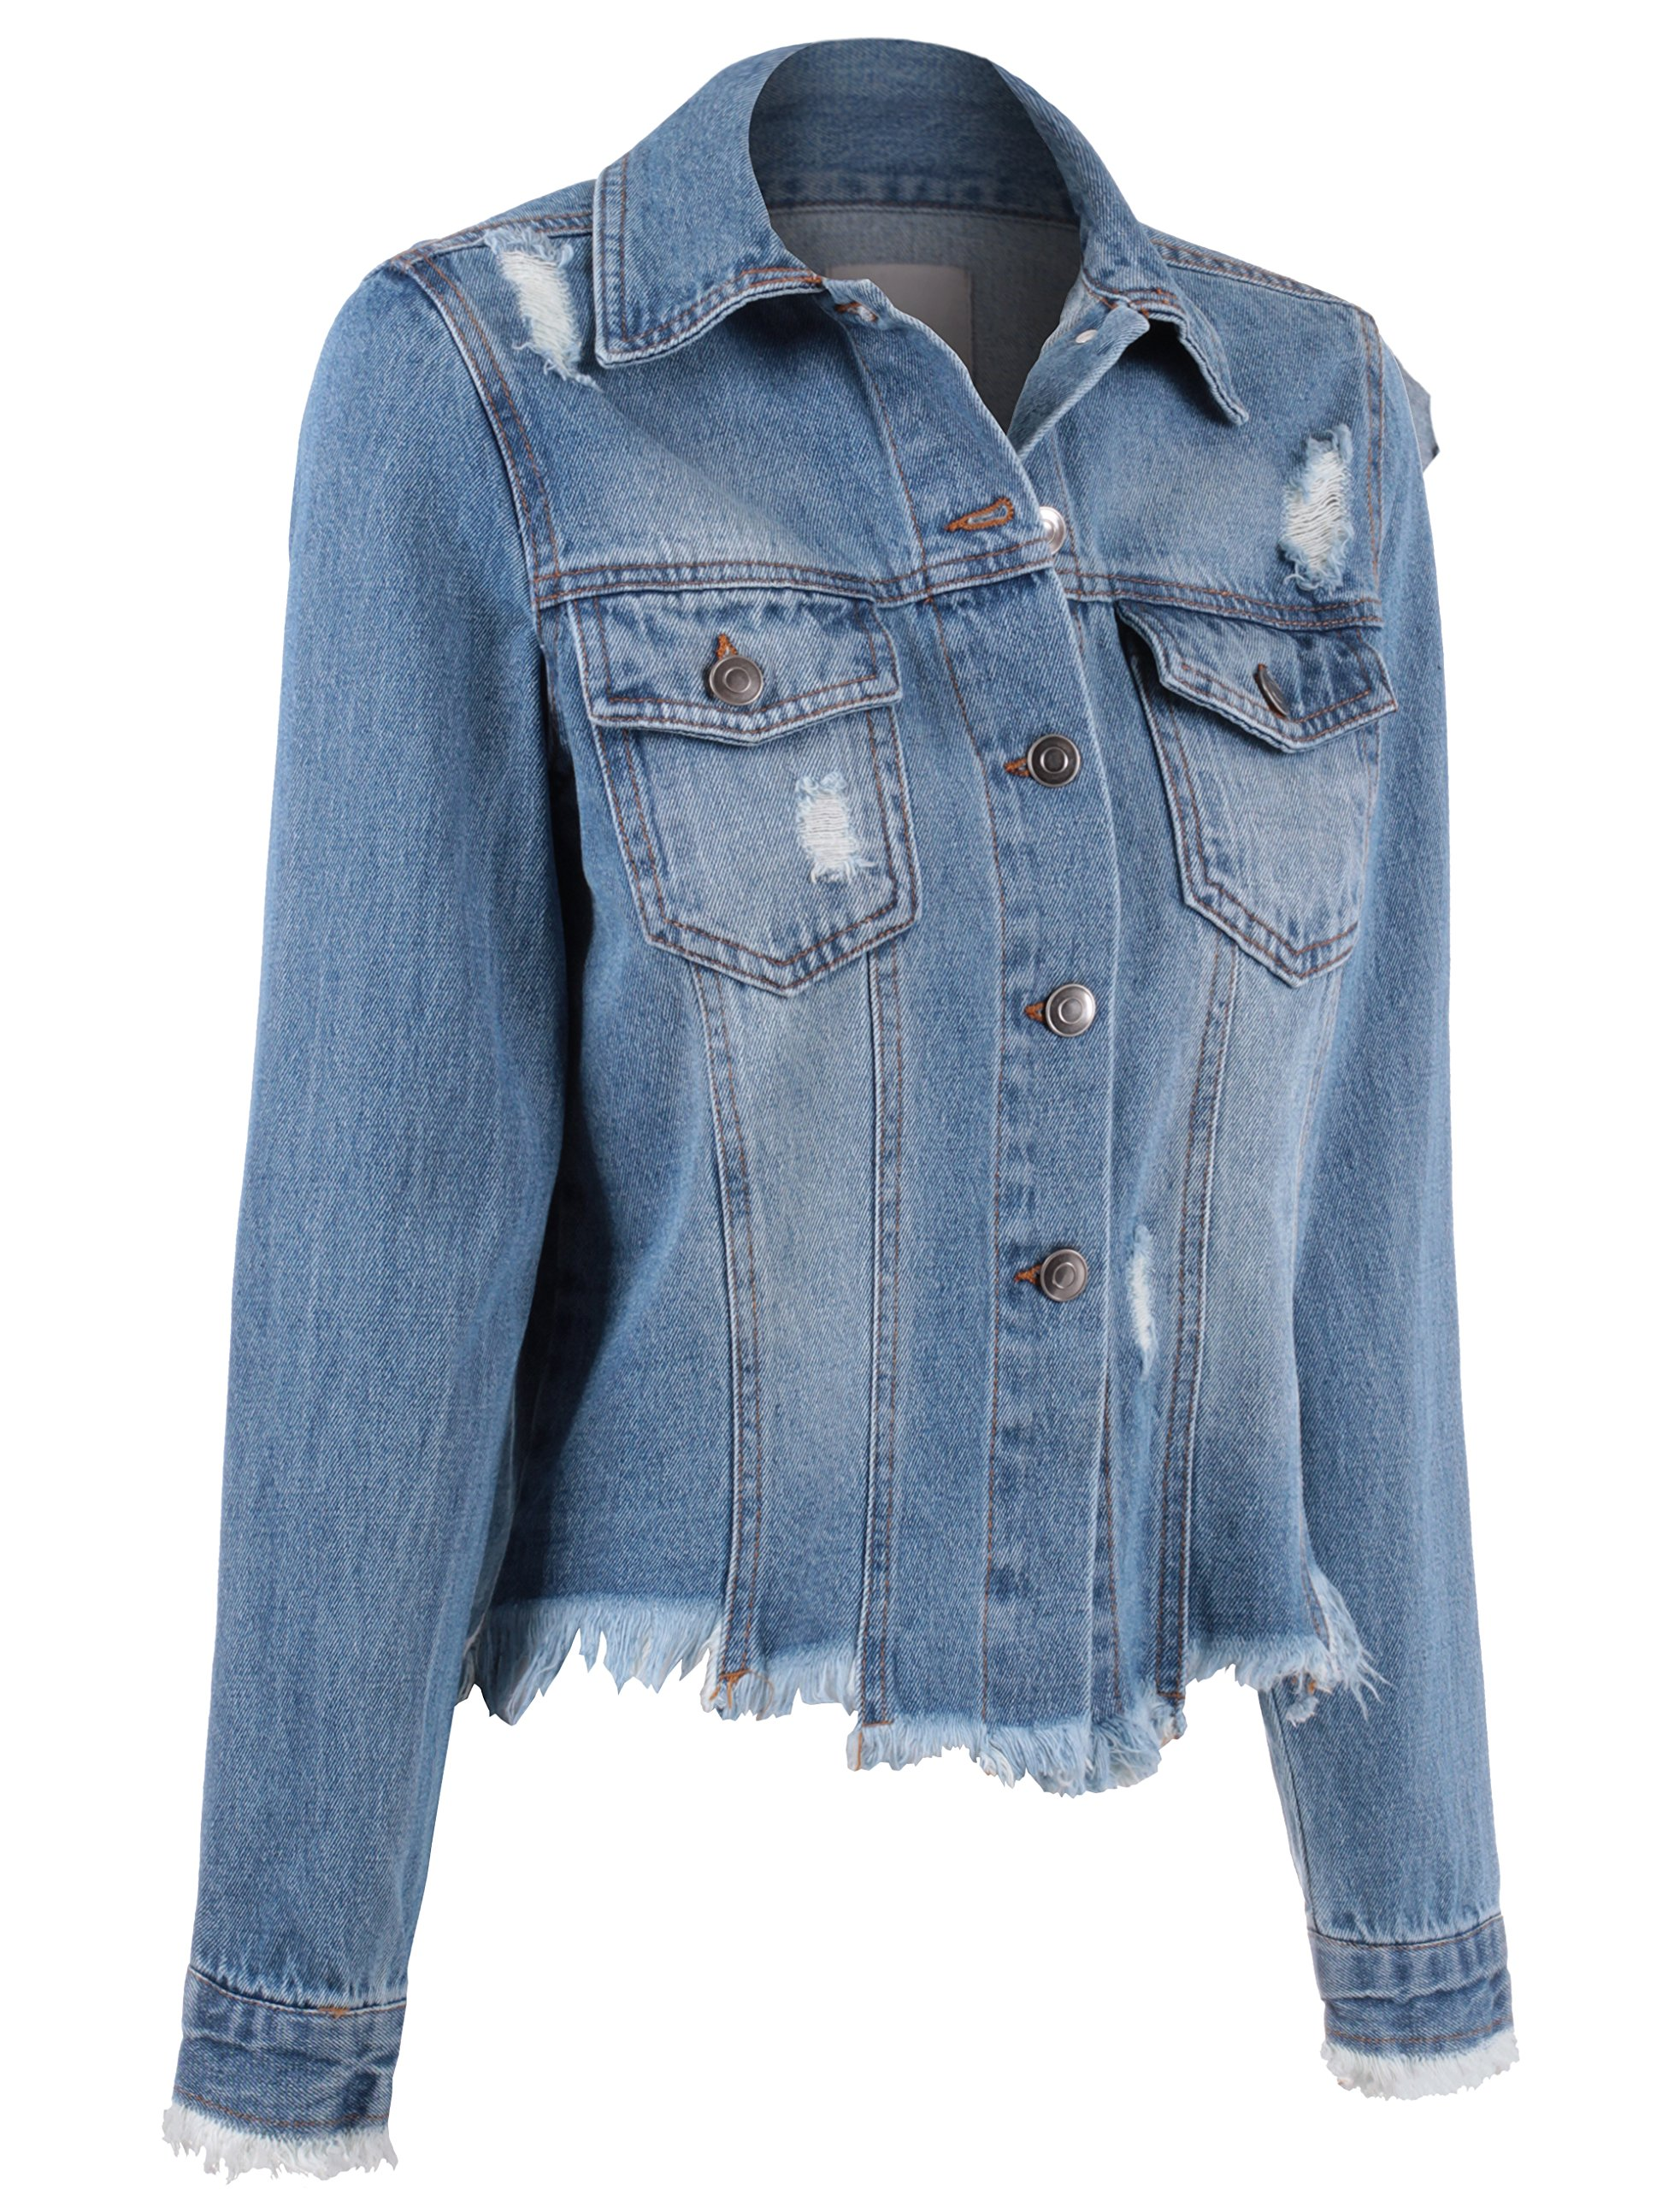 BEKTOME Womens Distressed Vintage Denim Jacket With Embroidery On Back-M-Blue